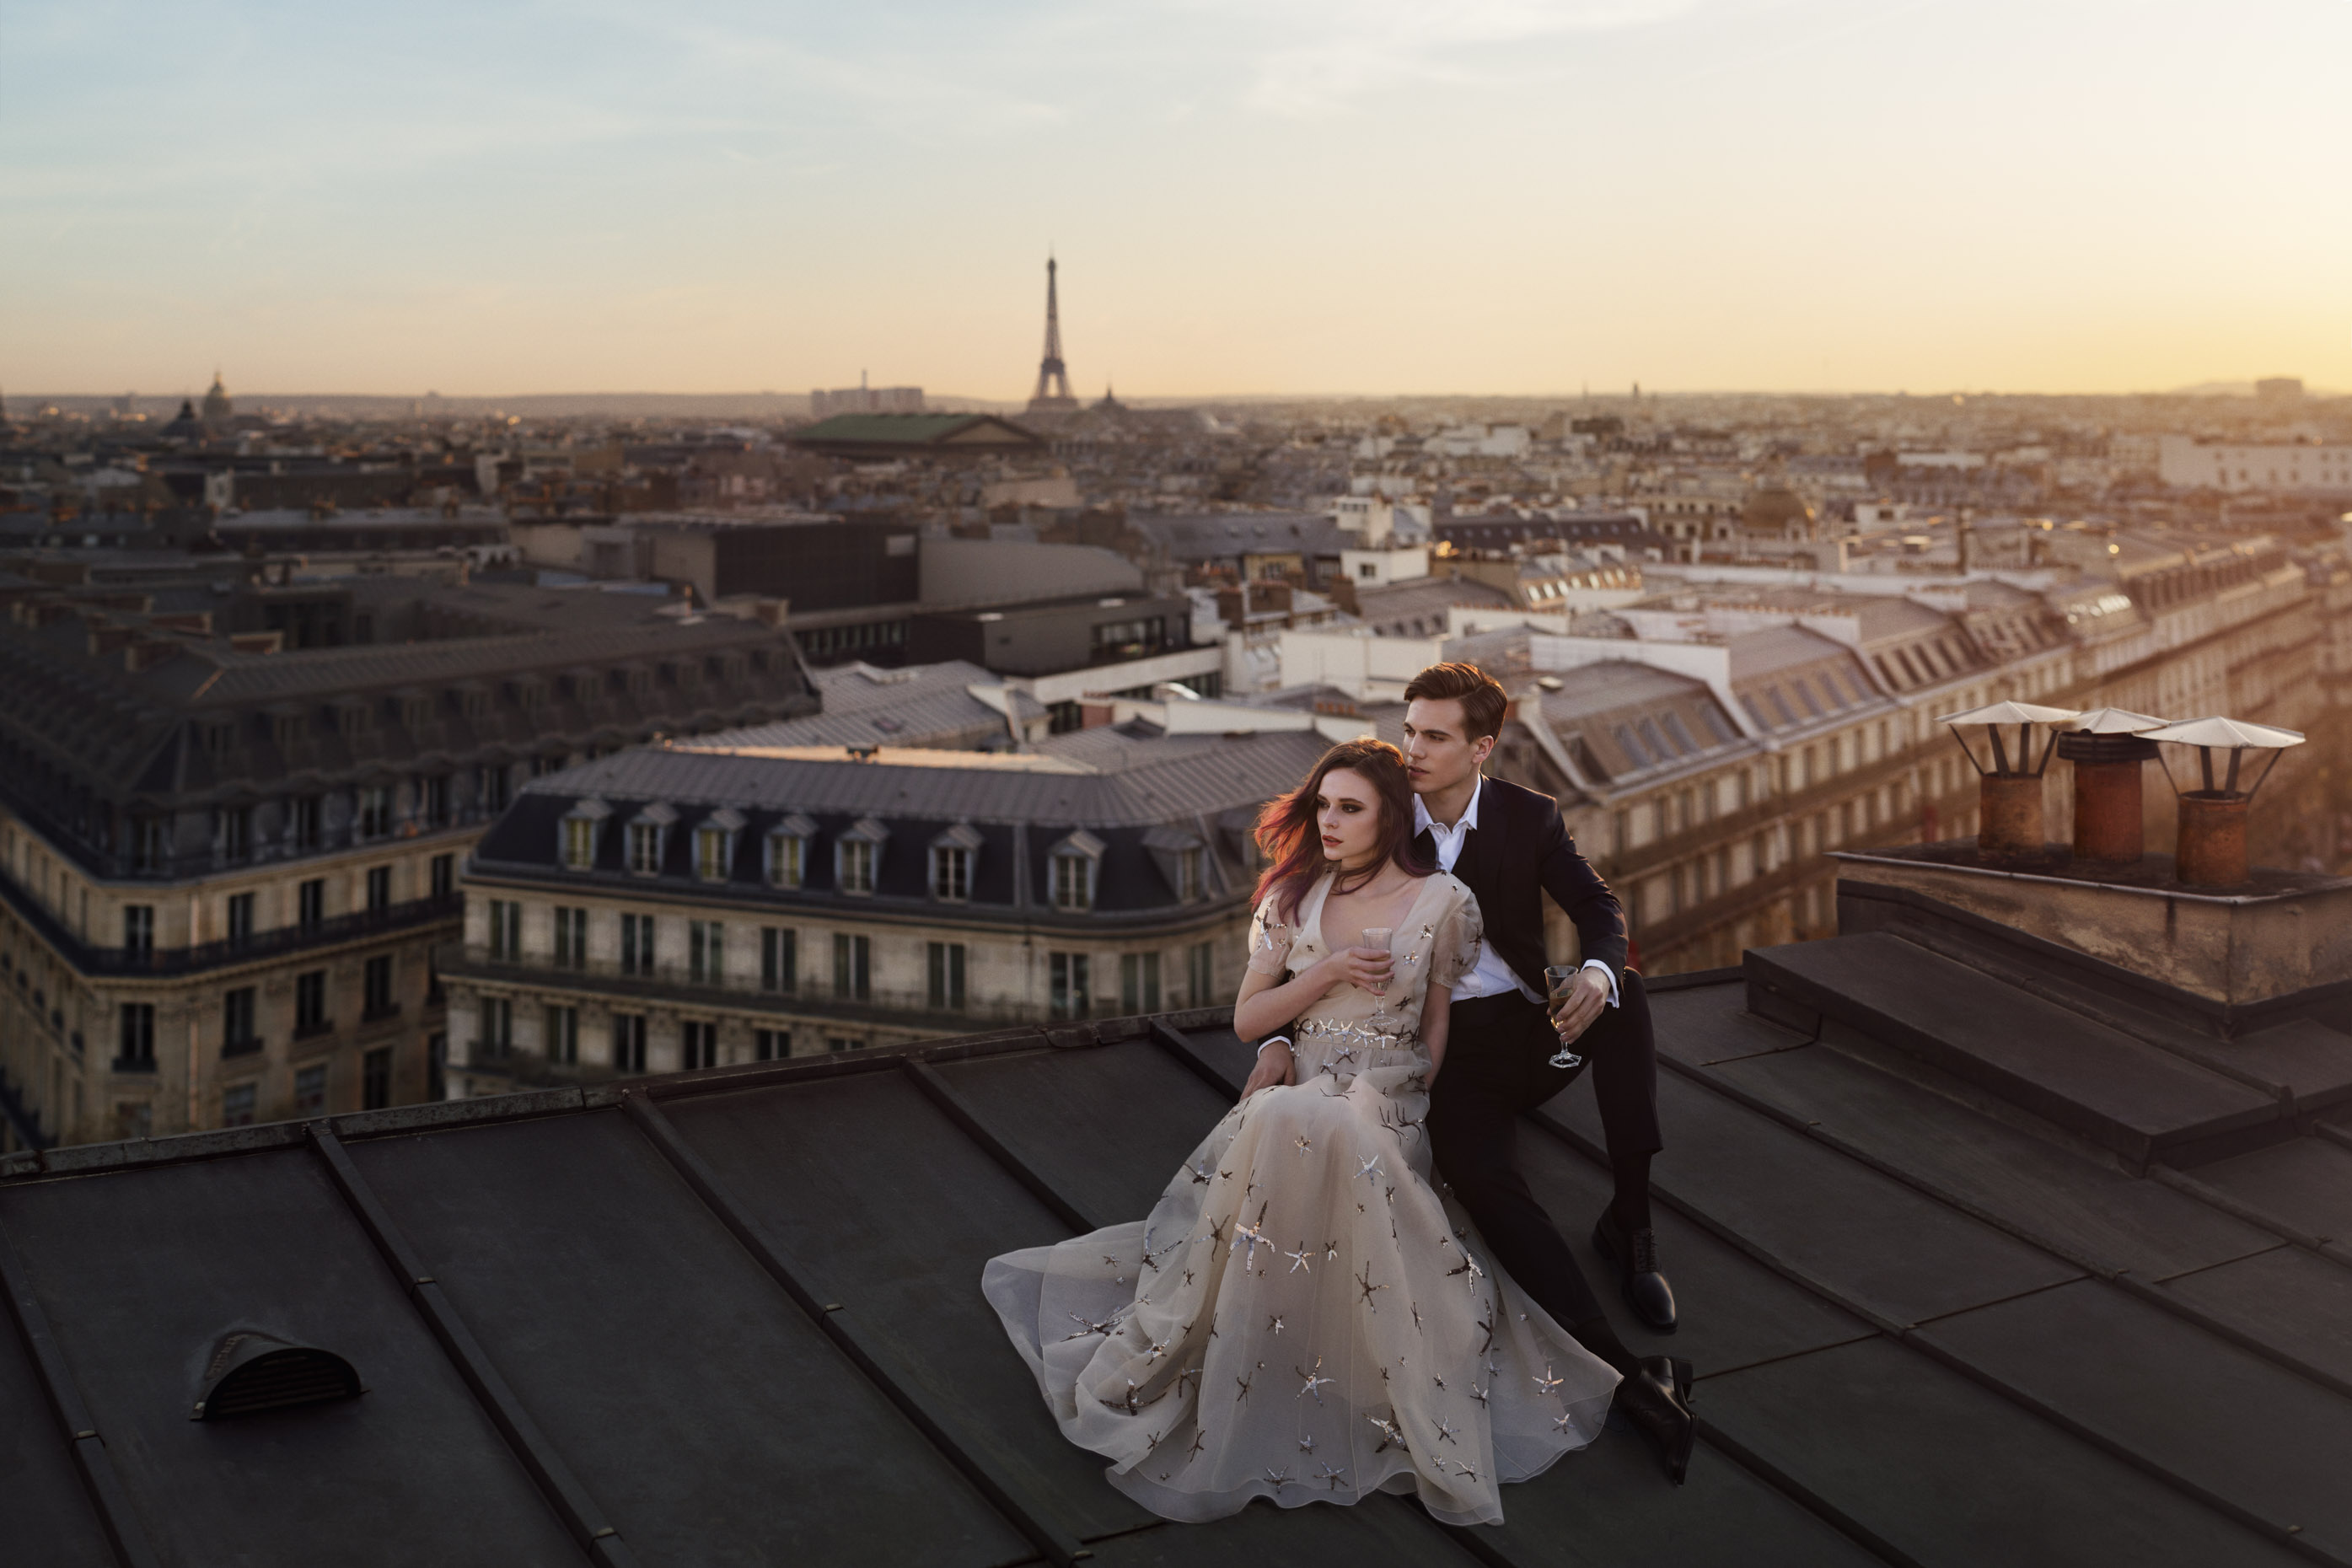 FallForFrance2015-Paris_Rooftop_V3_HighRes